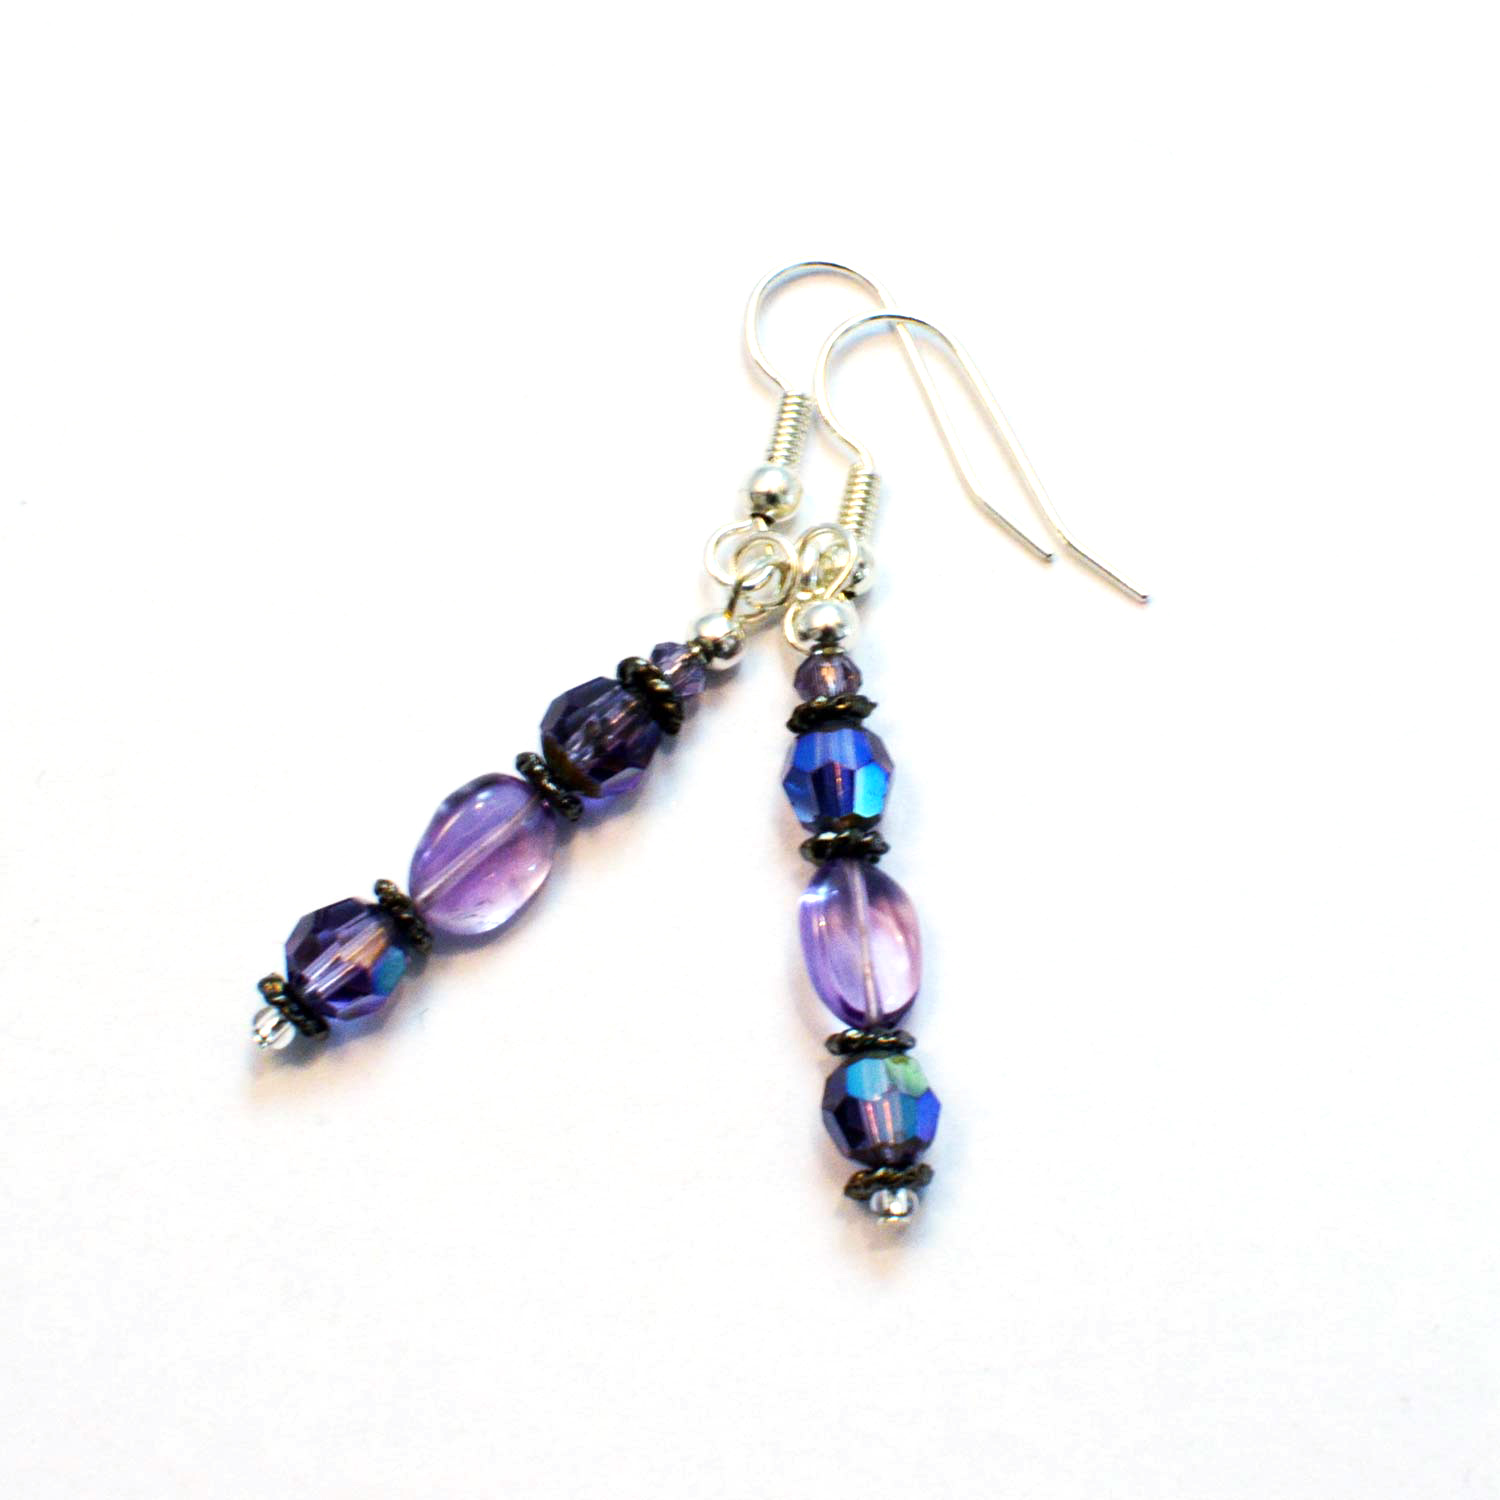 boho chic amethyst earrings